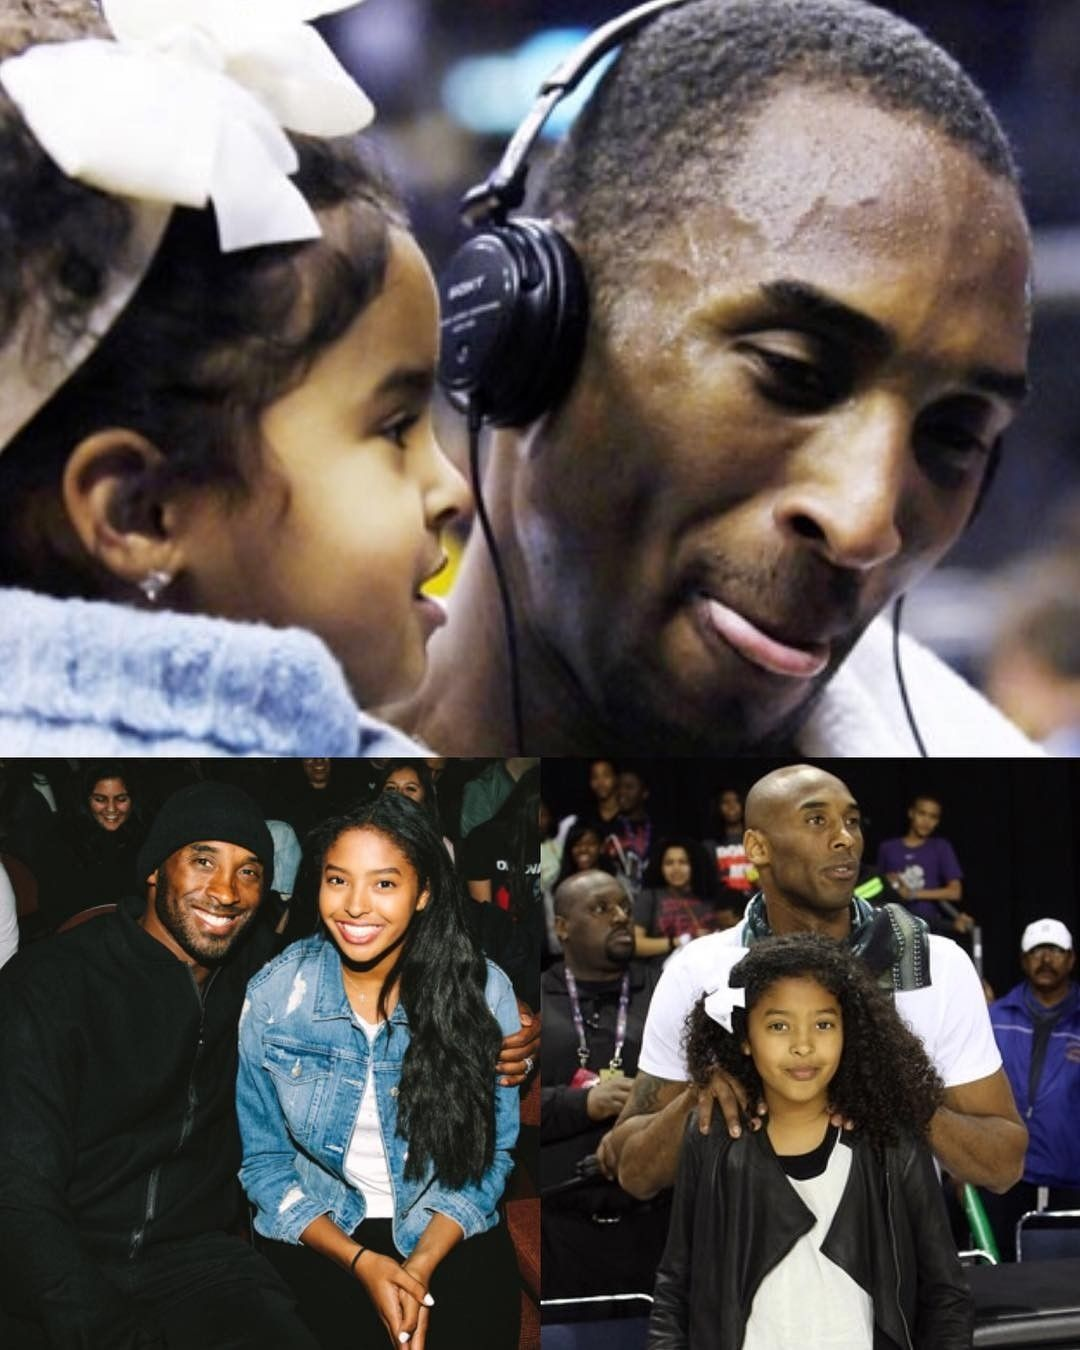 Pin by Memorable Moments on R.I.P. Kobe Bryant & Gianna